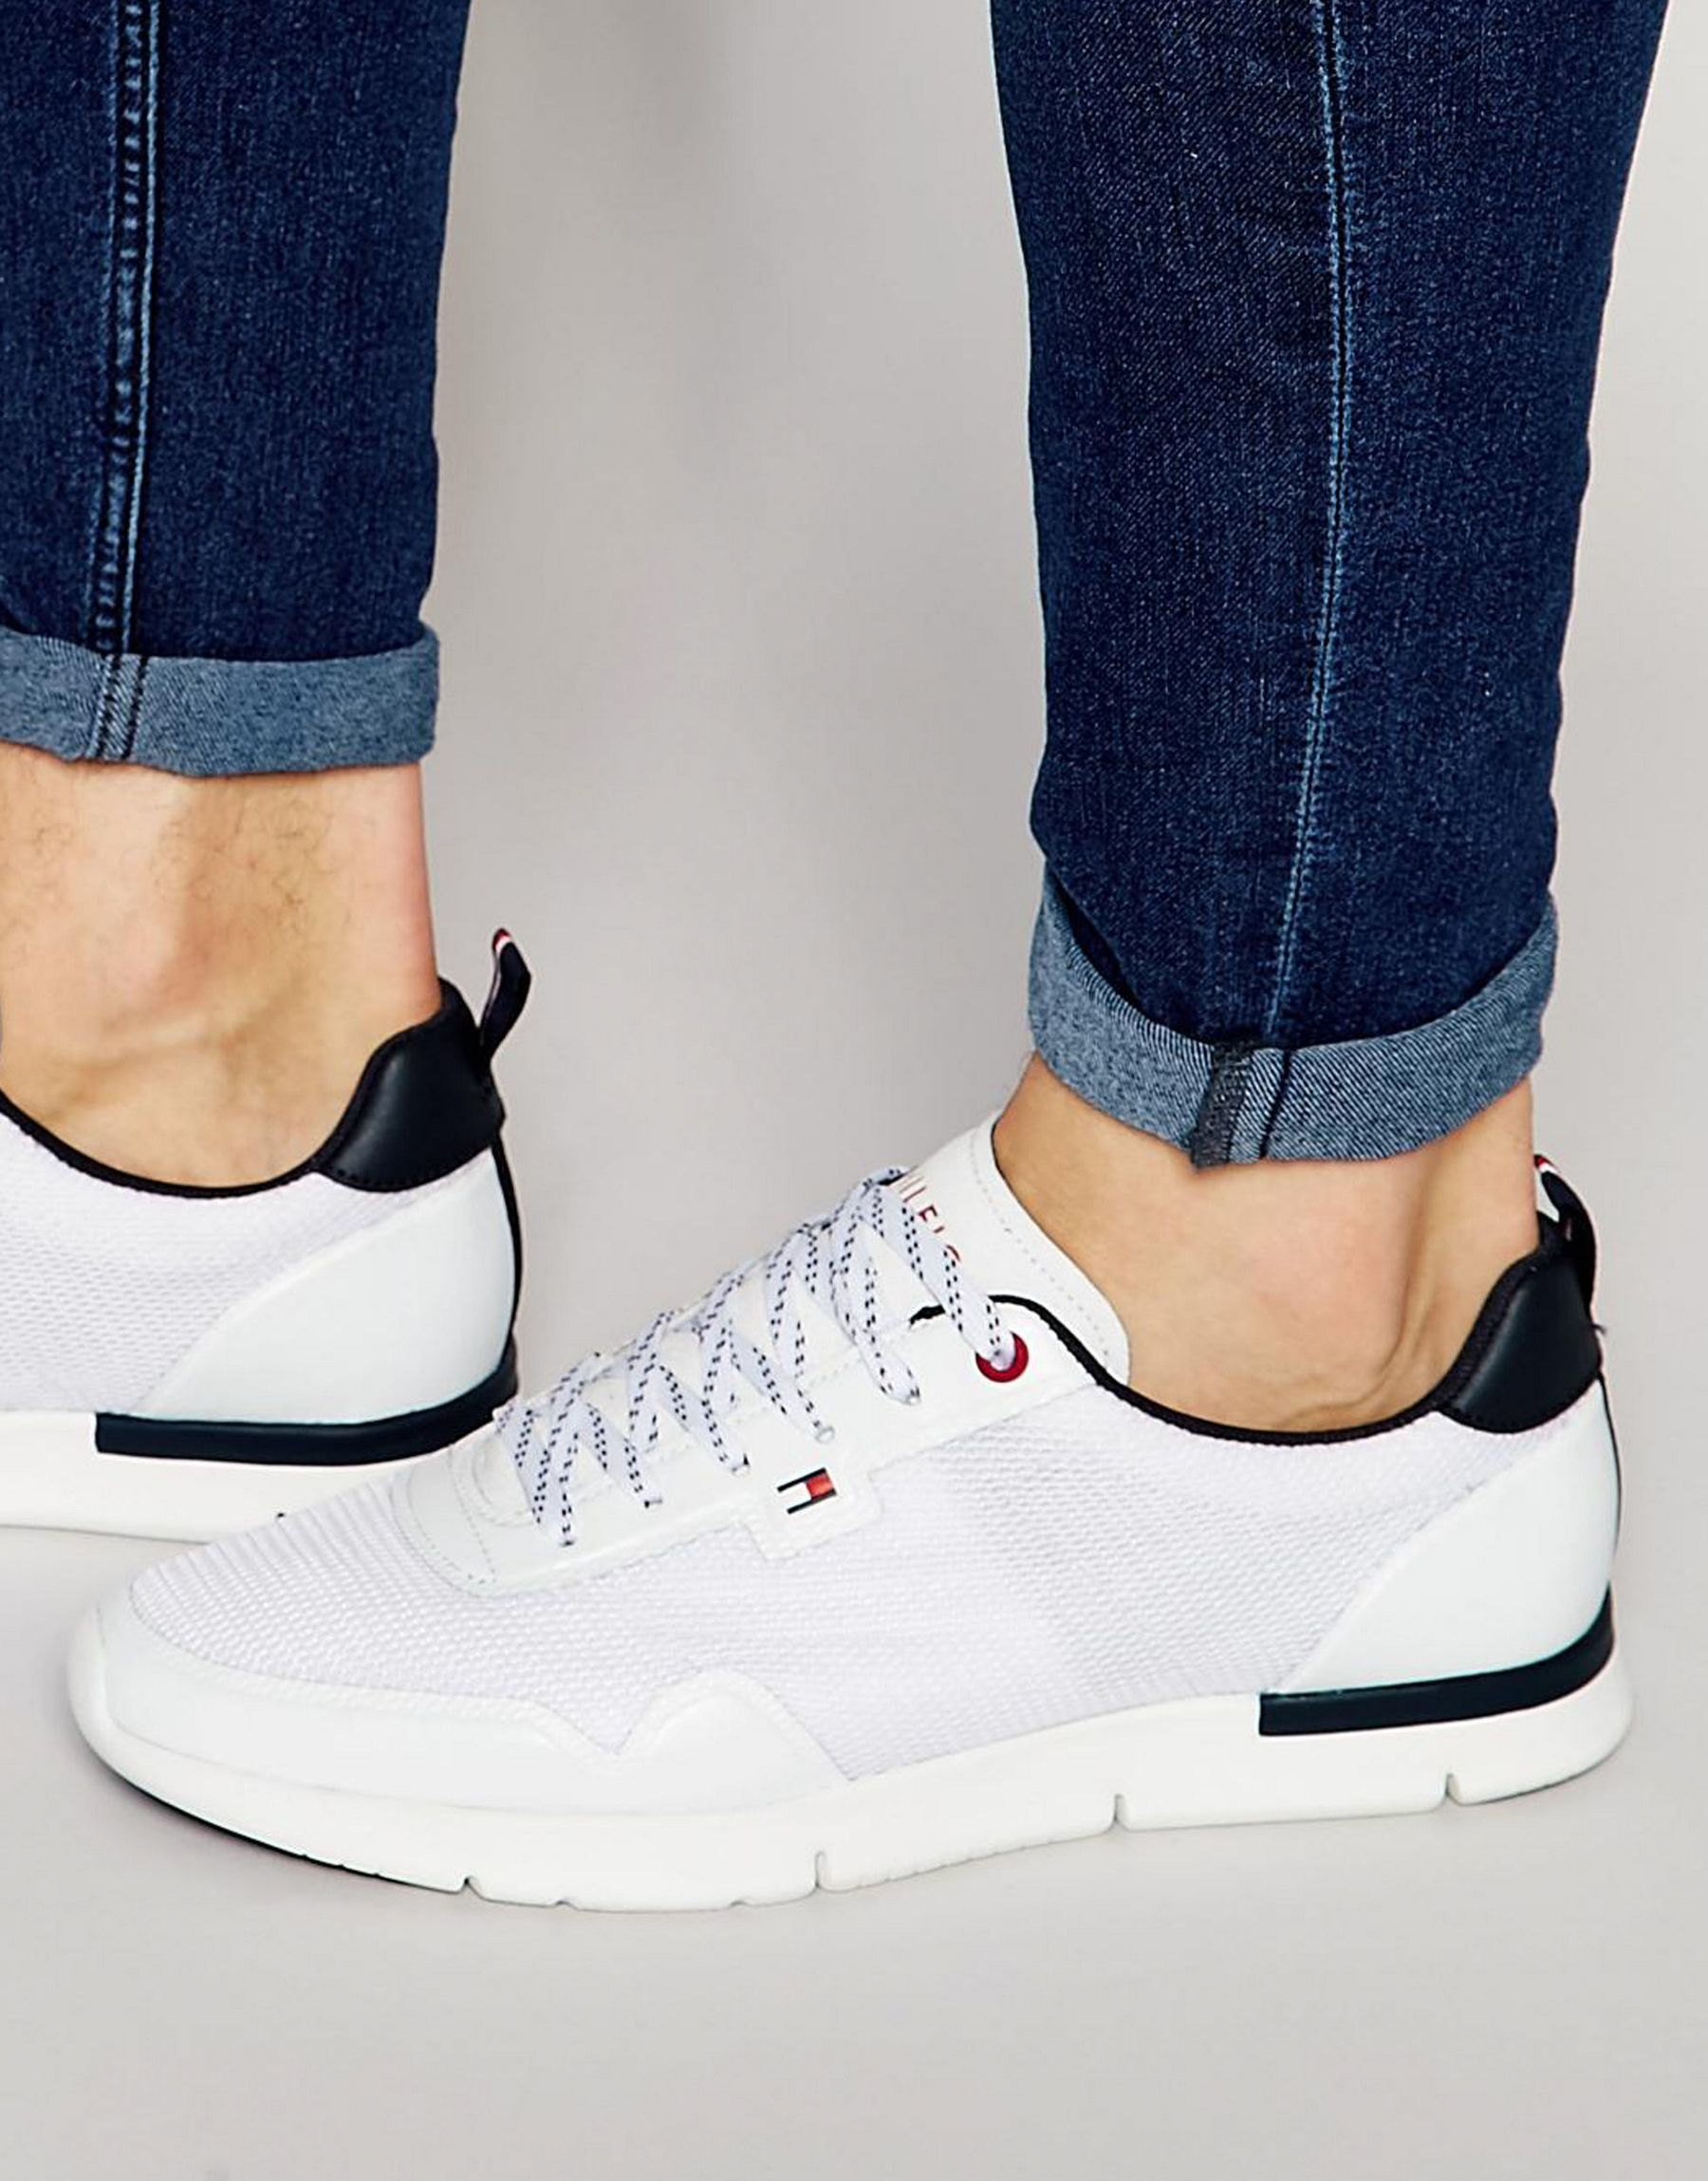 3156e9d57 Tommy Hilfiger Tobias Runner Sneakers in White for Men - Lyst